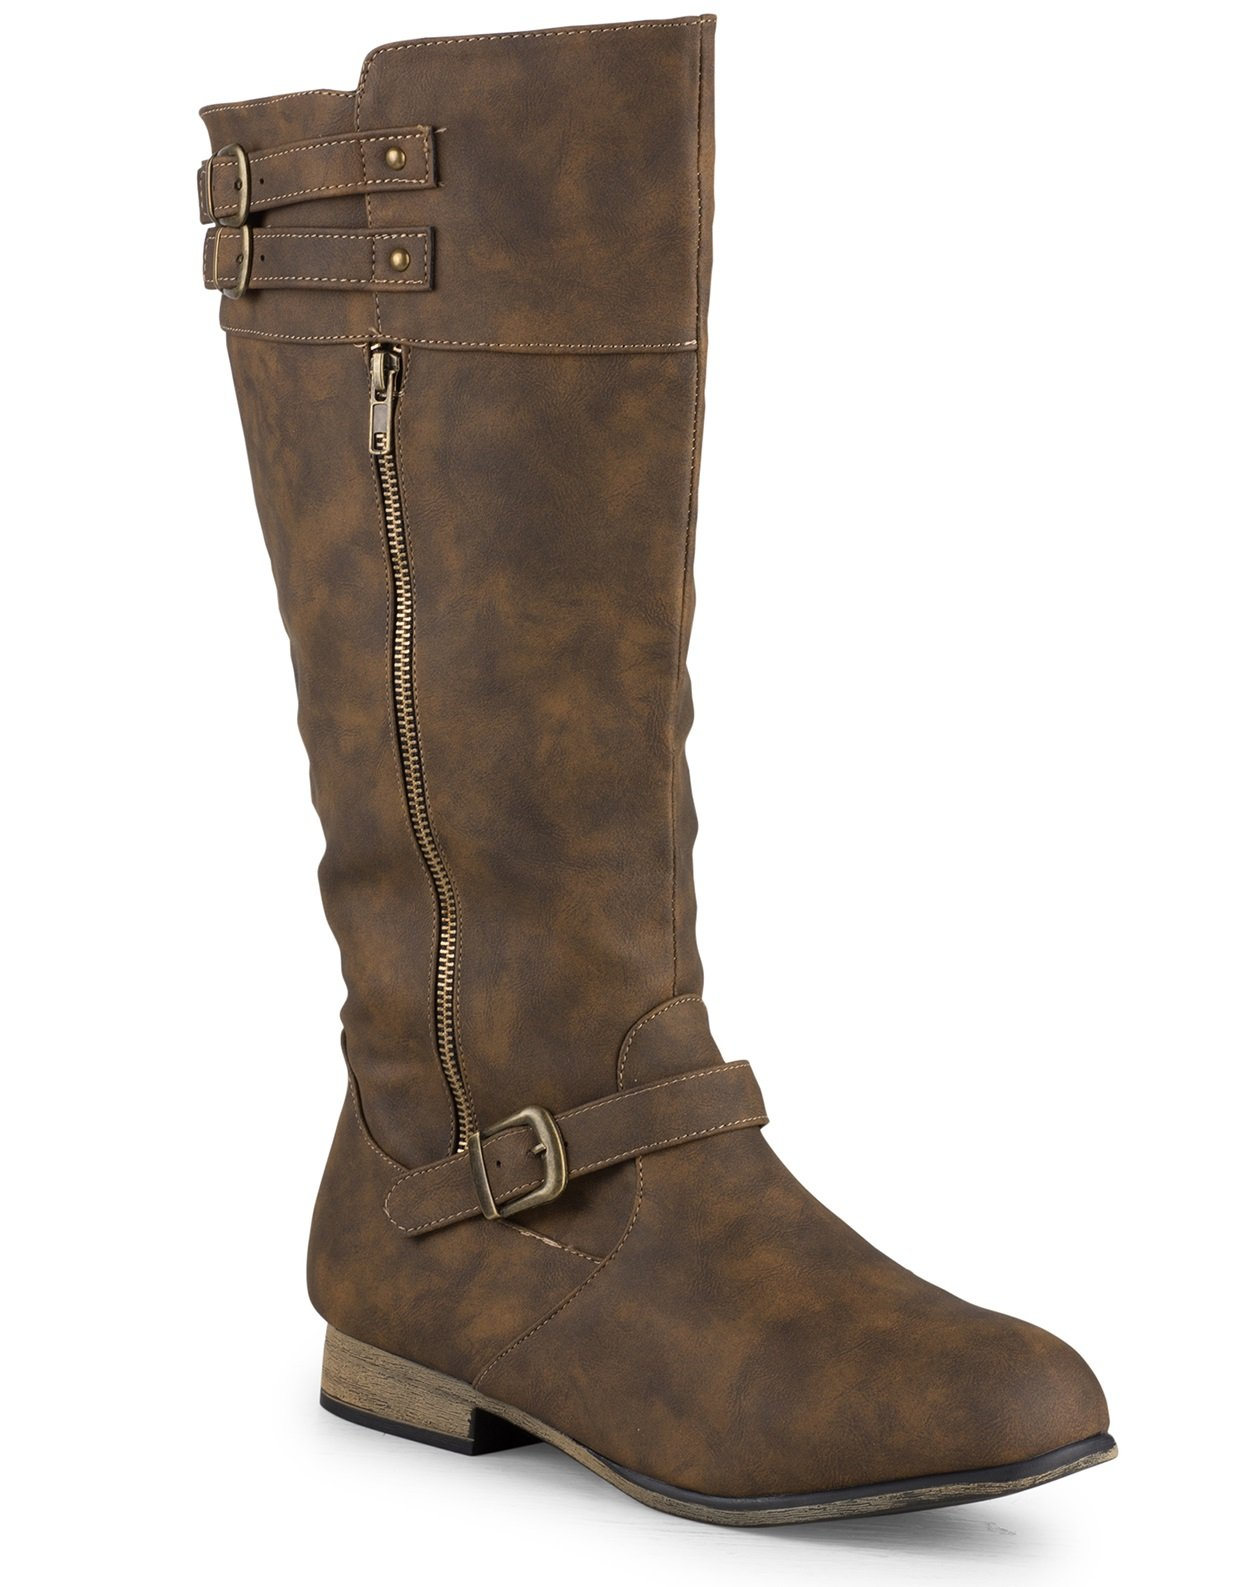 Twisted Women's Noah Wide Width/Wide Calf Knee High Faux Leather Boots with Buckle Straps - NOAH01P DK Taupe, Size 11